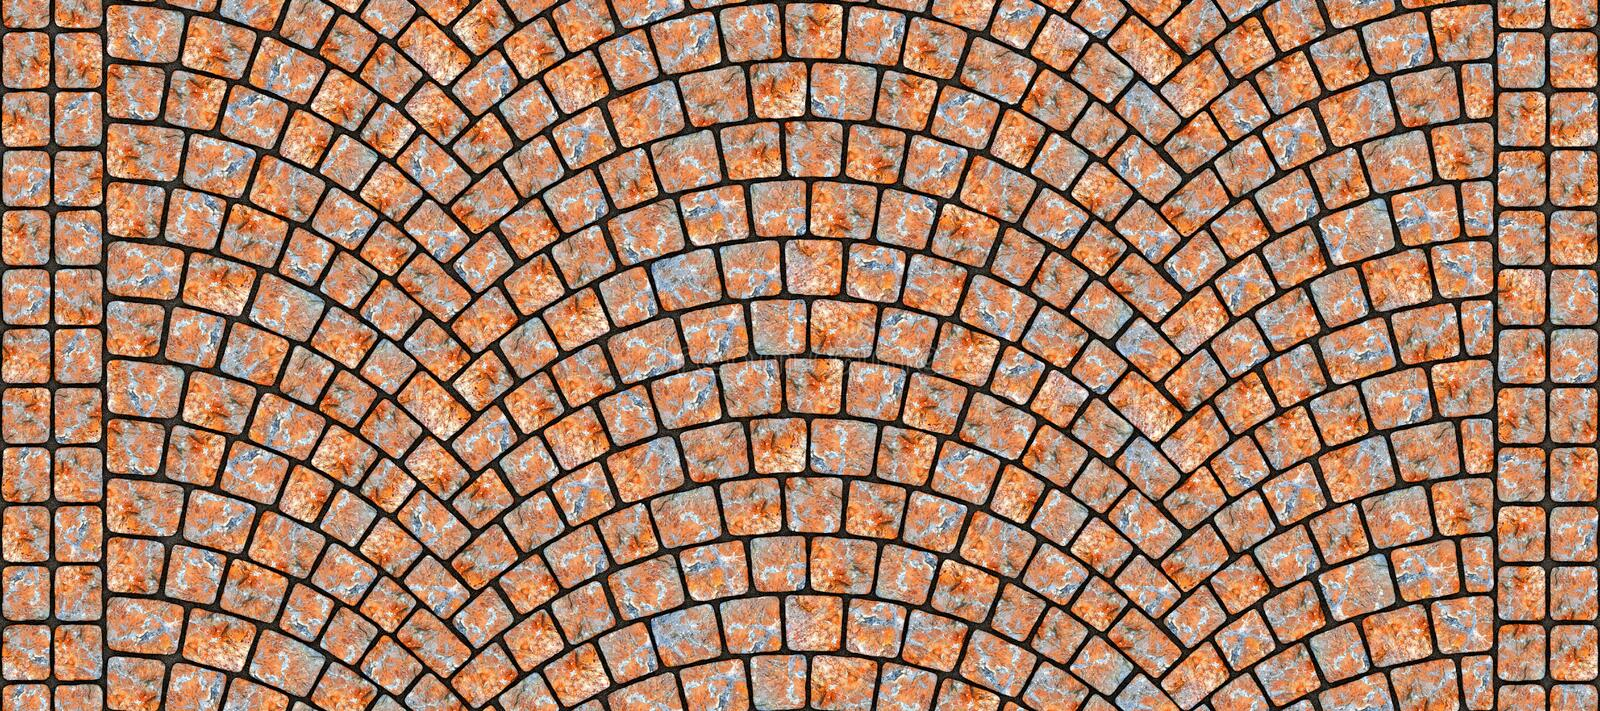 Road curved cobblestone texture 113. Cobblestone arched pavement road with edge courses at the sidewalk. Seamless tileable repeating 3D rendering texture royalty free illustration